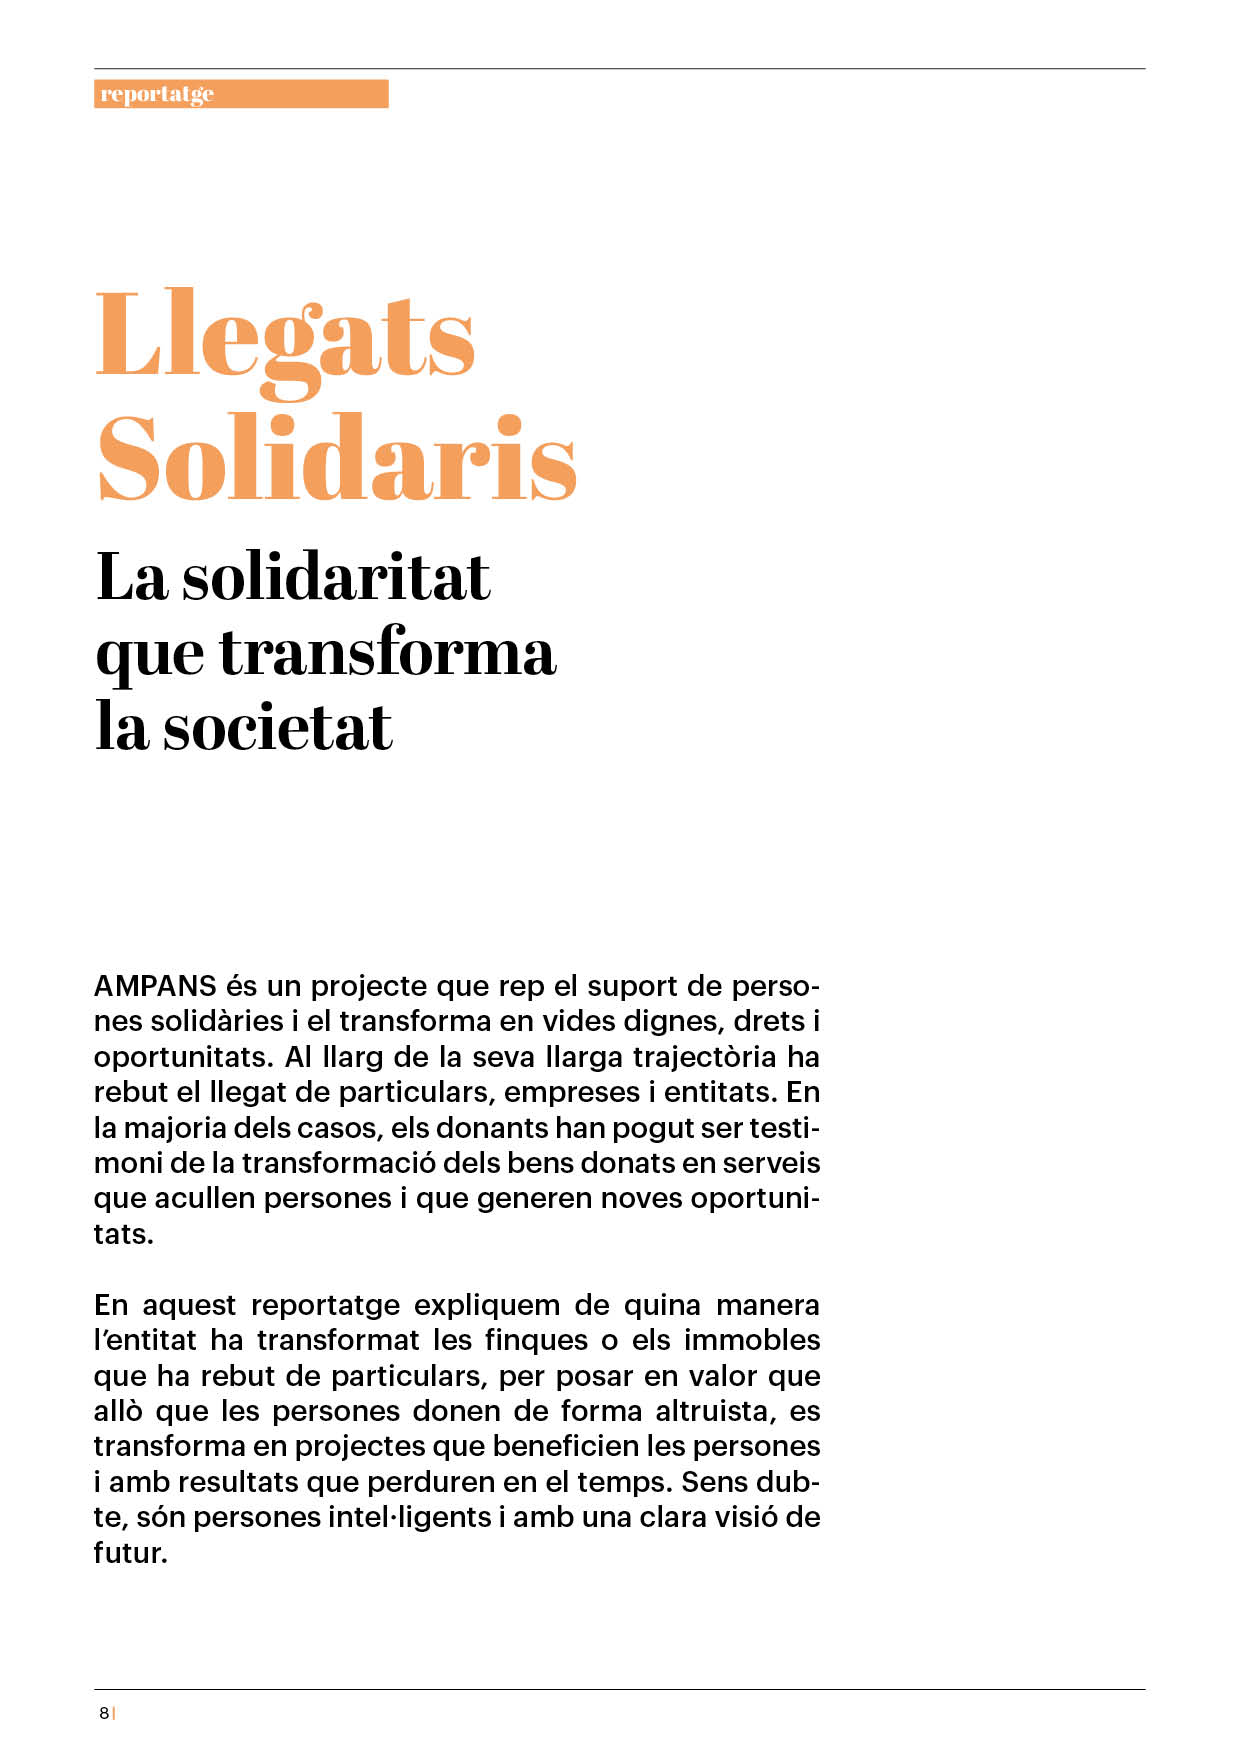 Llegats-solidaris-article